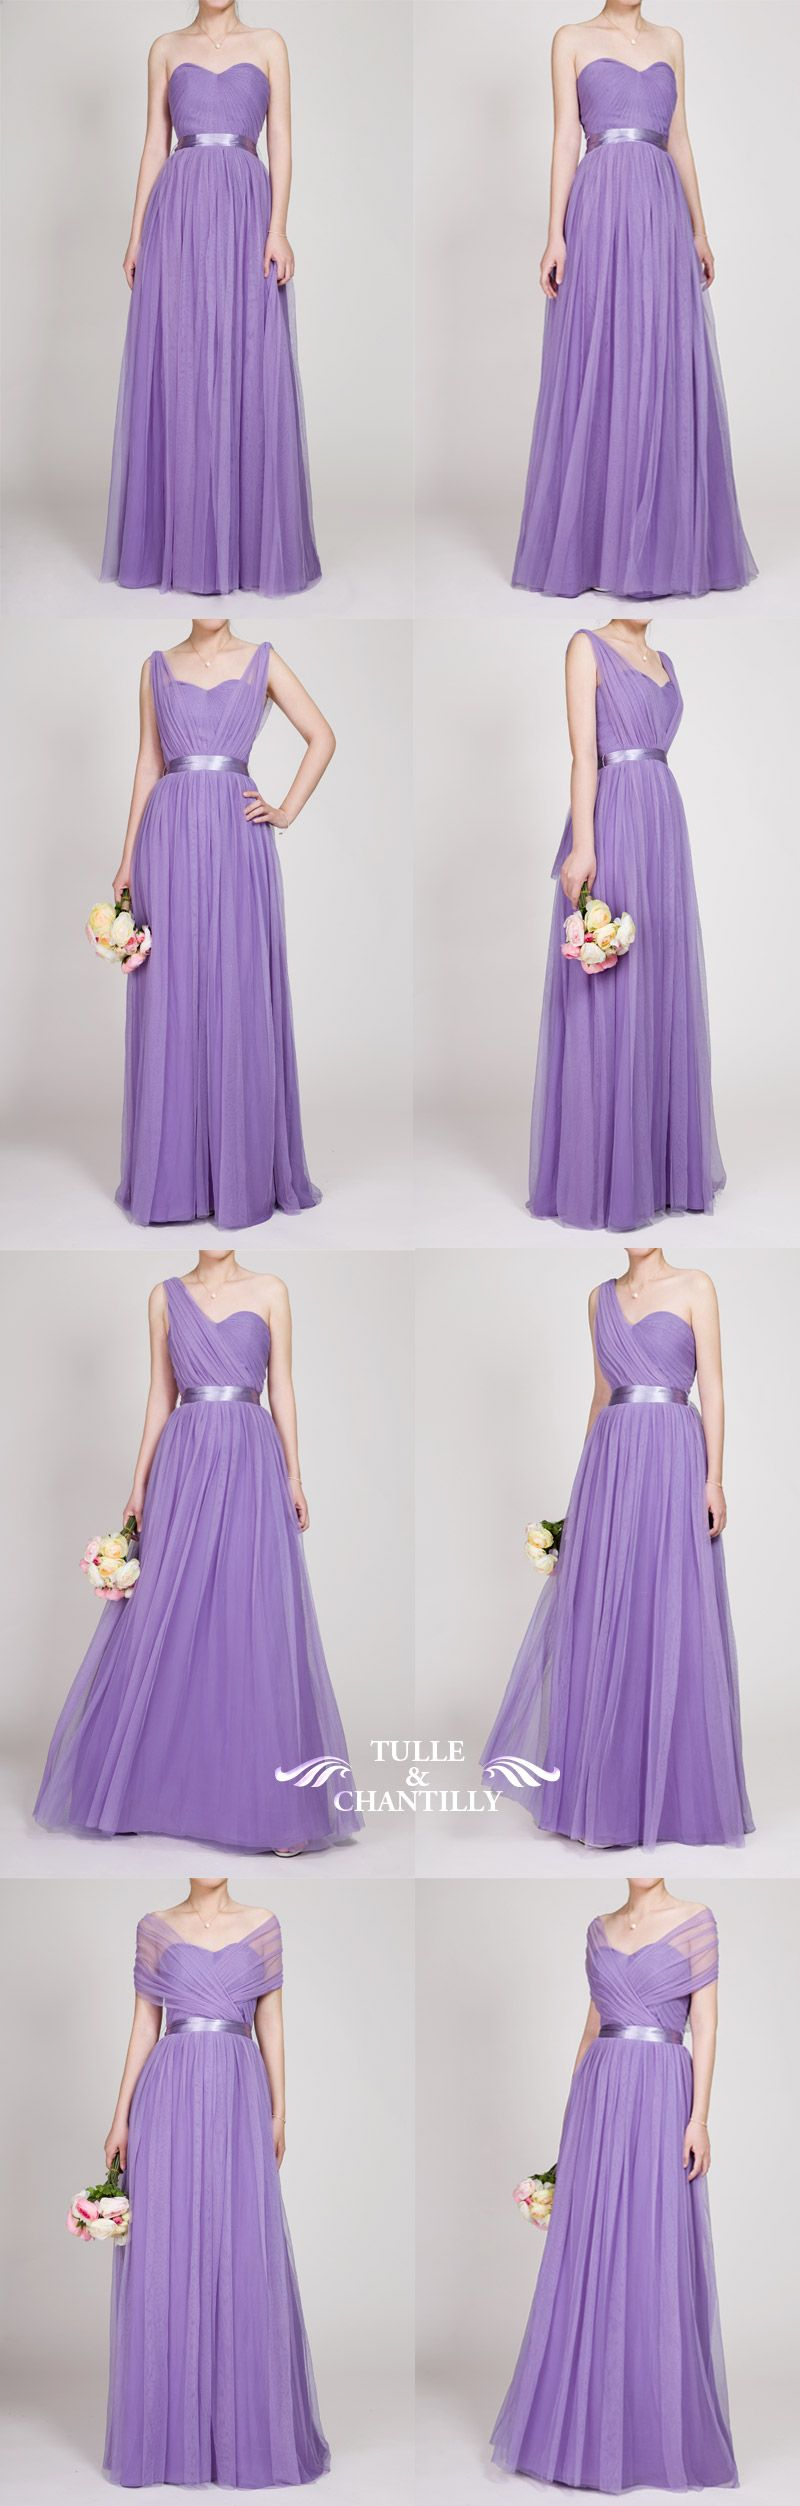 Tulle Convertible Multi-wear Bridesmaid Dress TBQP307 | Pinterest ...